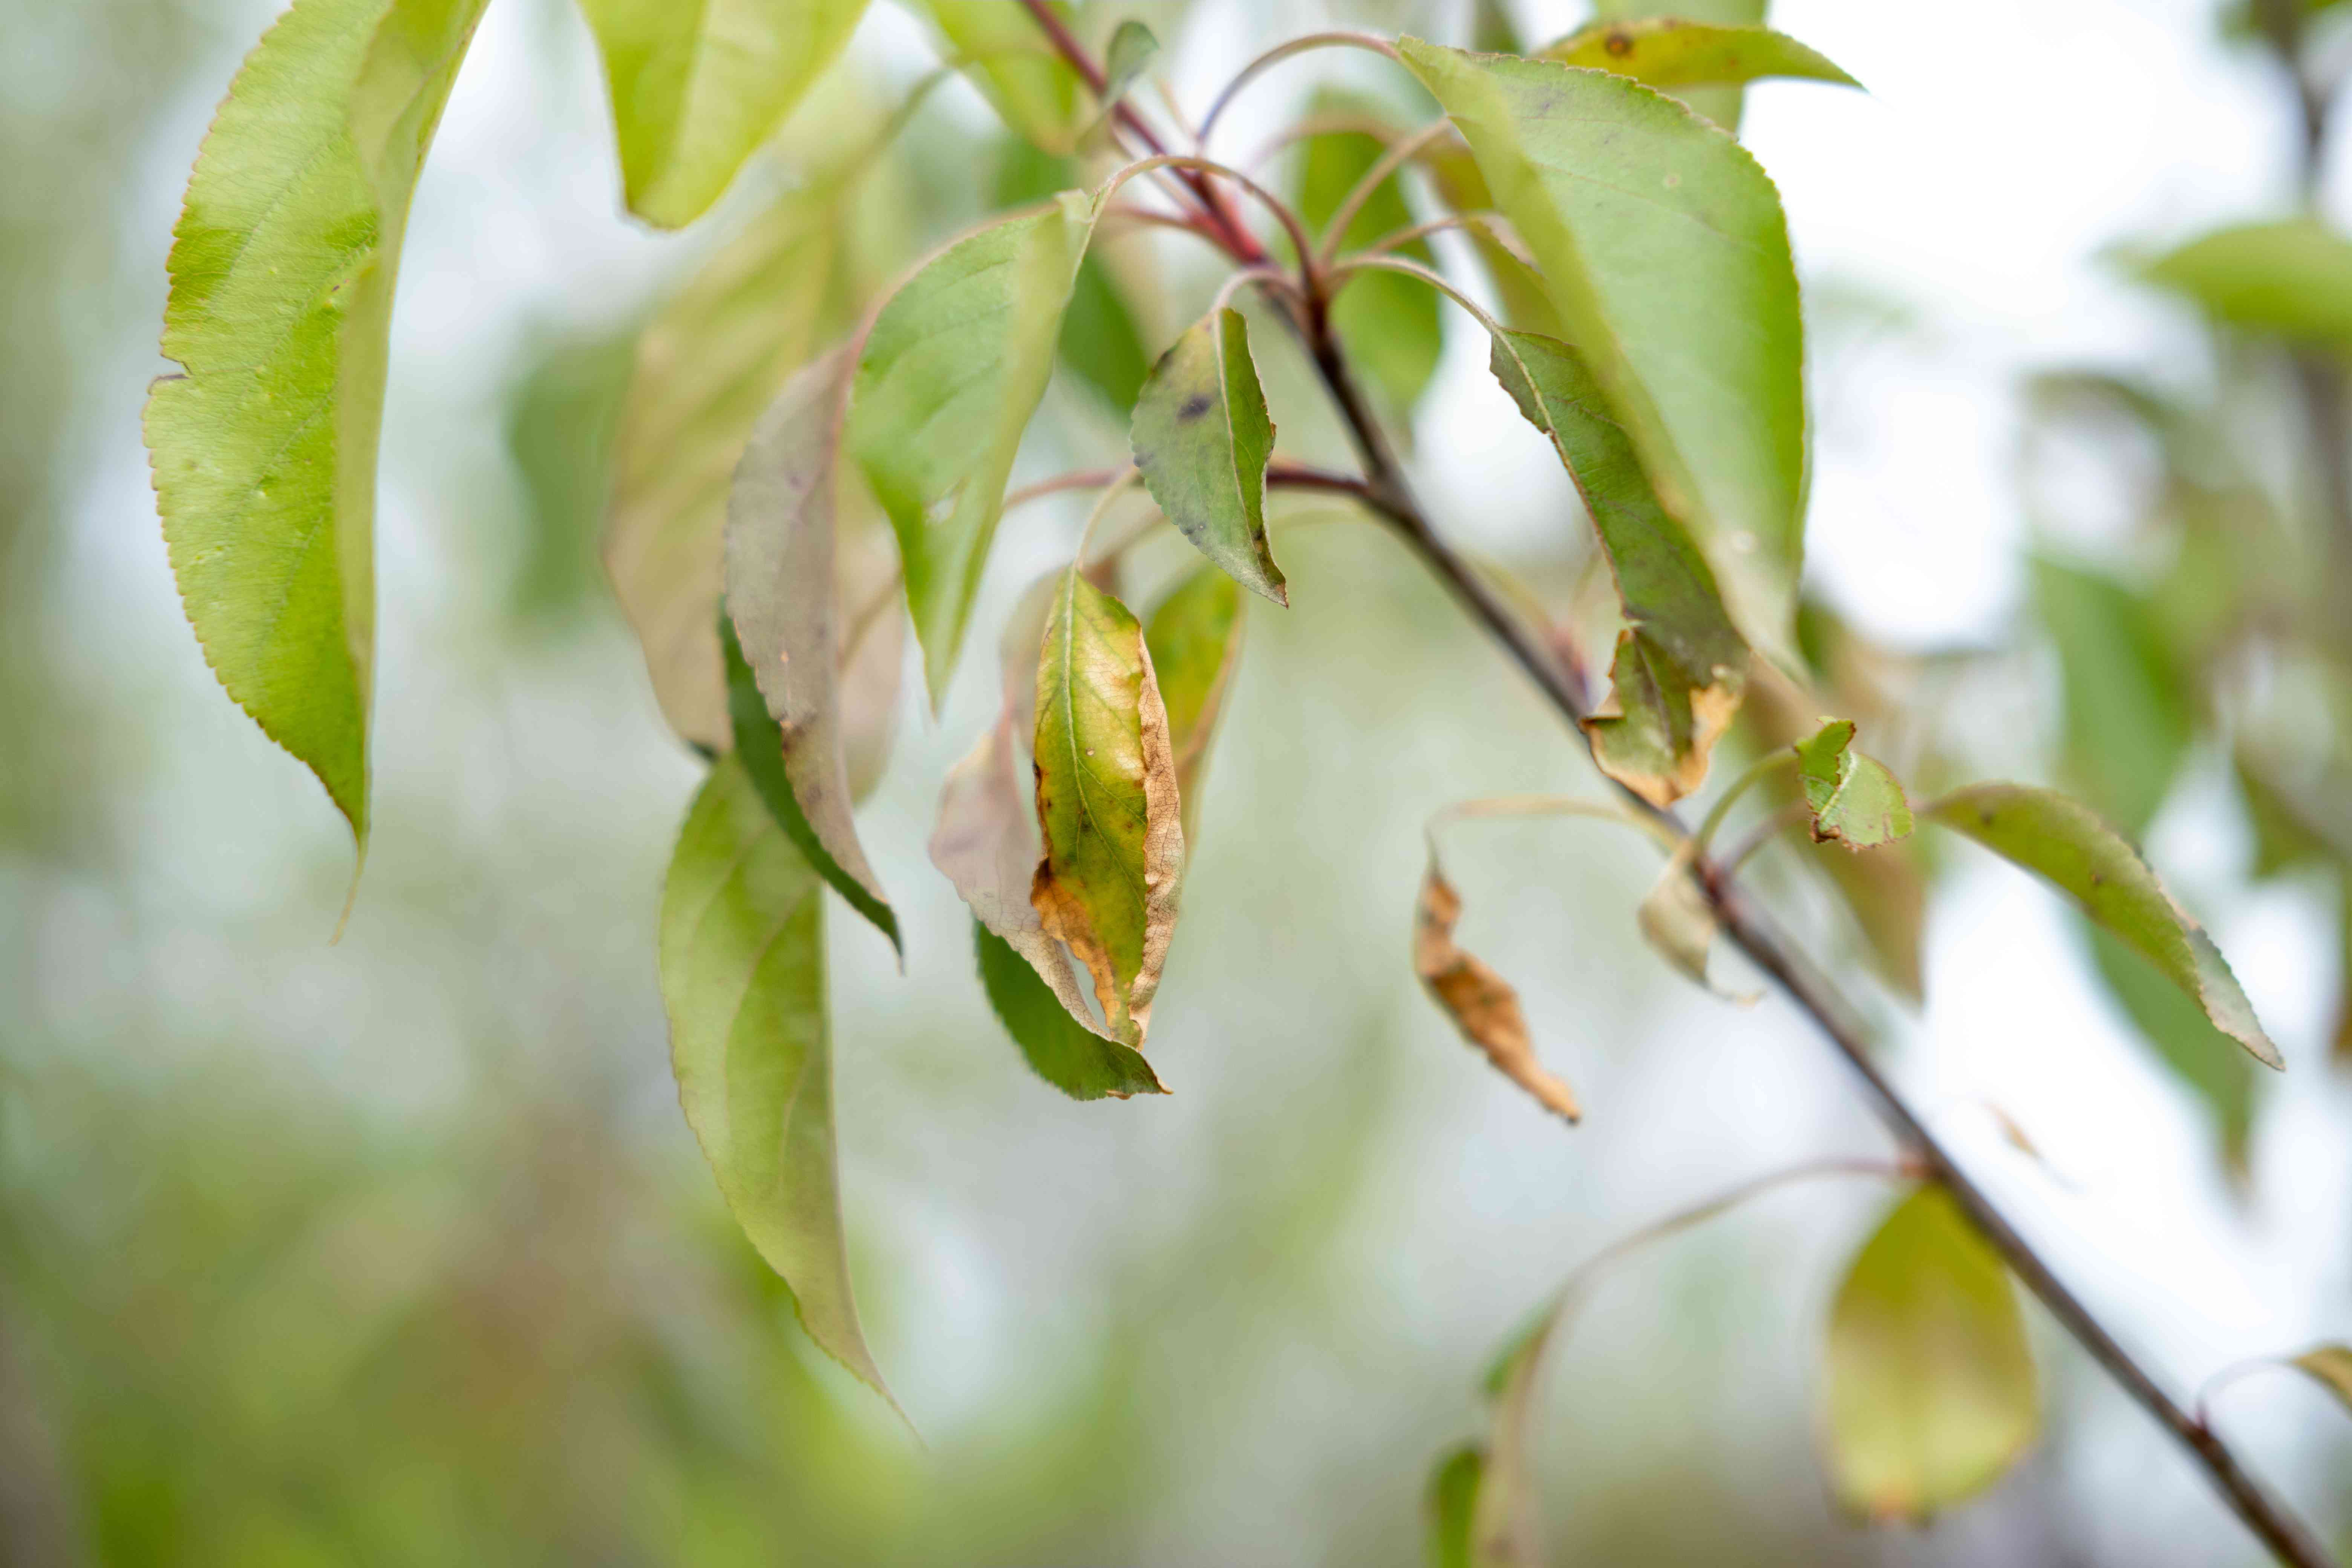 close shot of unhealthy tree branch with shriveled and yellowed leaves